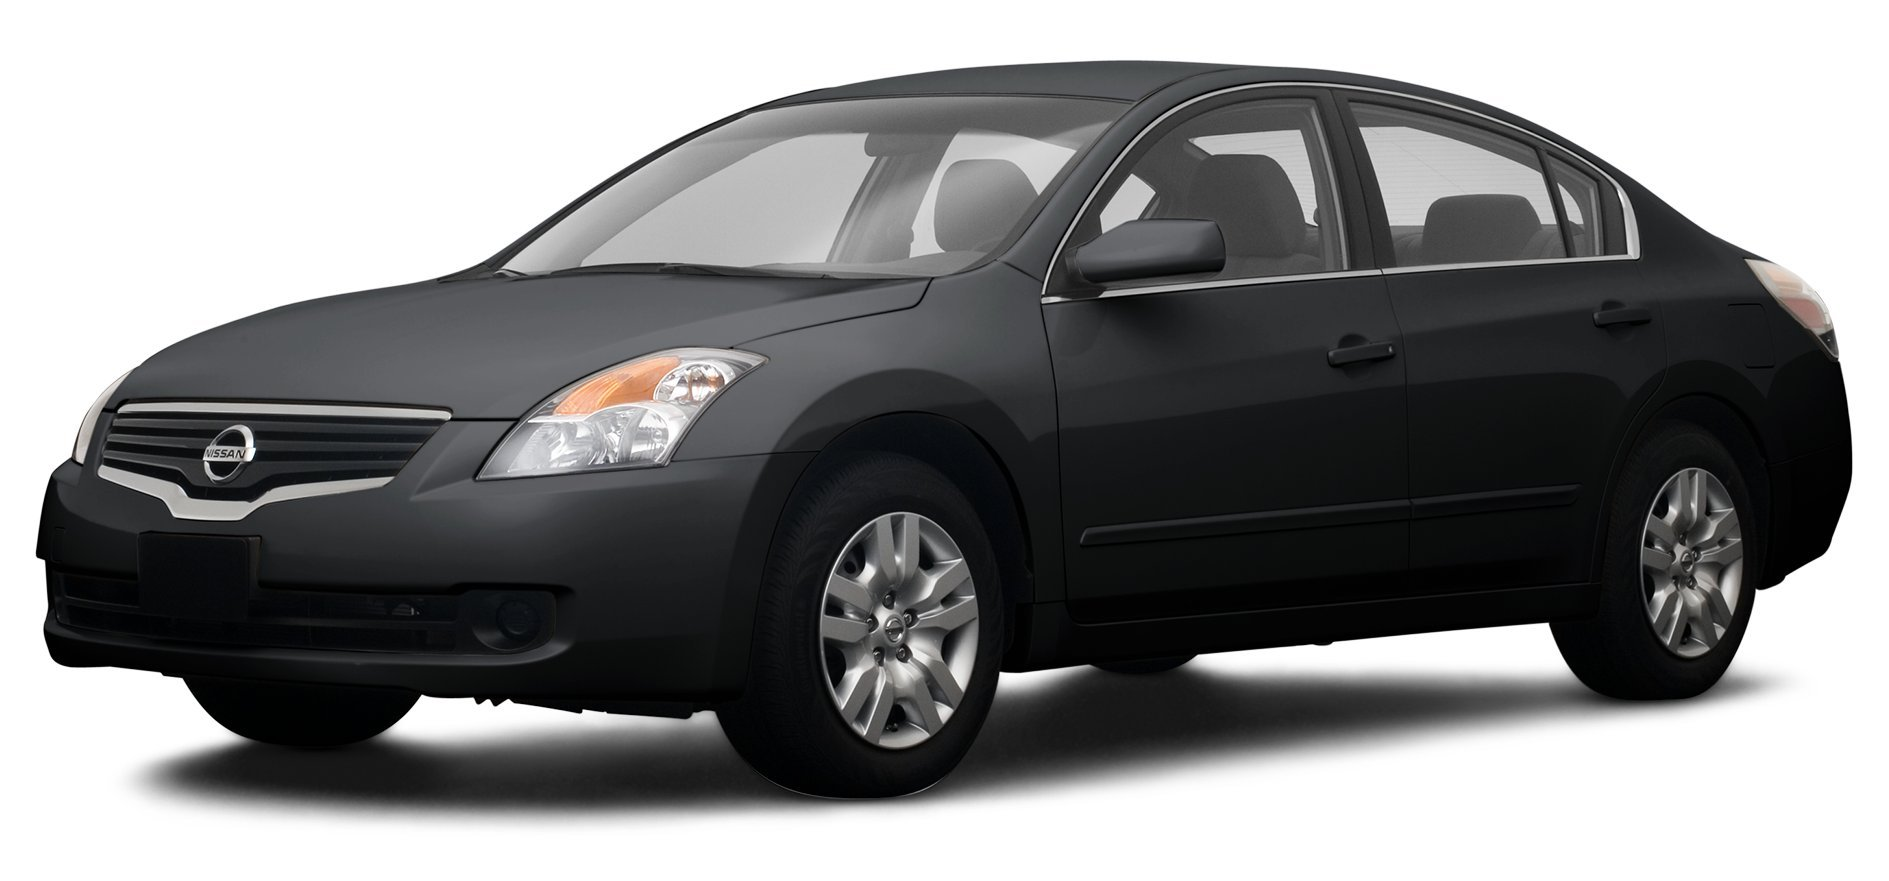 Amazon 2009 nissan altima reviews images and specs vehicles 2009 nissan altima 25 4 door sedan 4 cylinder cvt vanachro Gallery